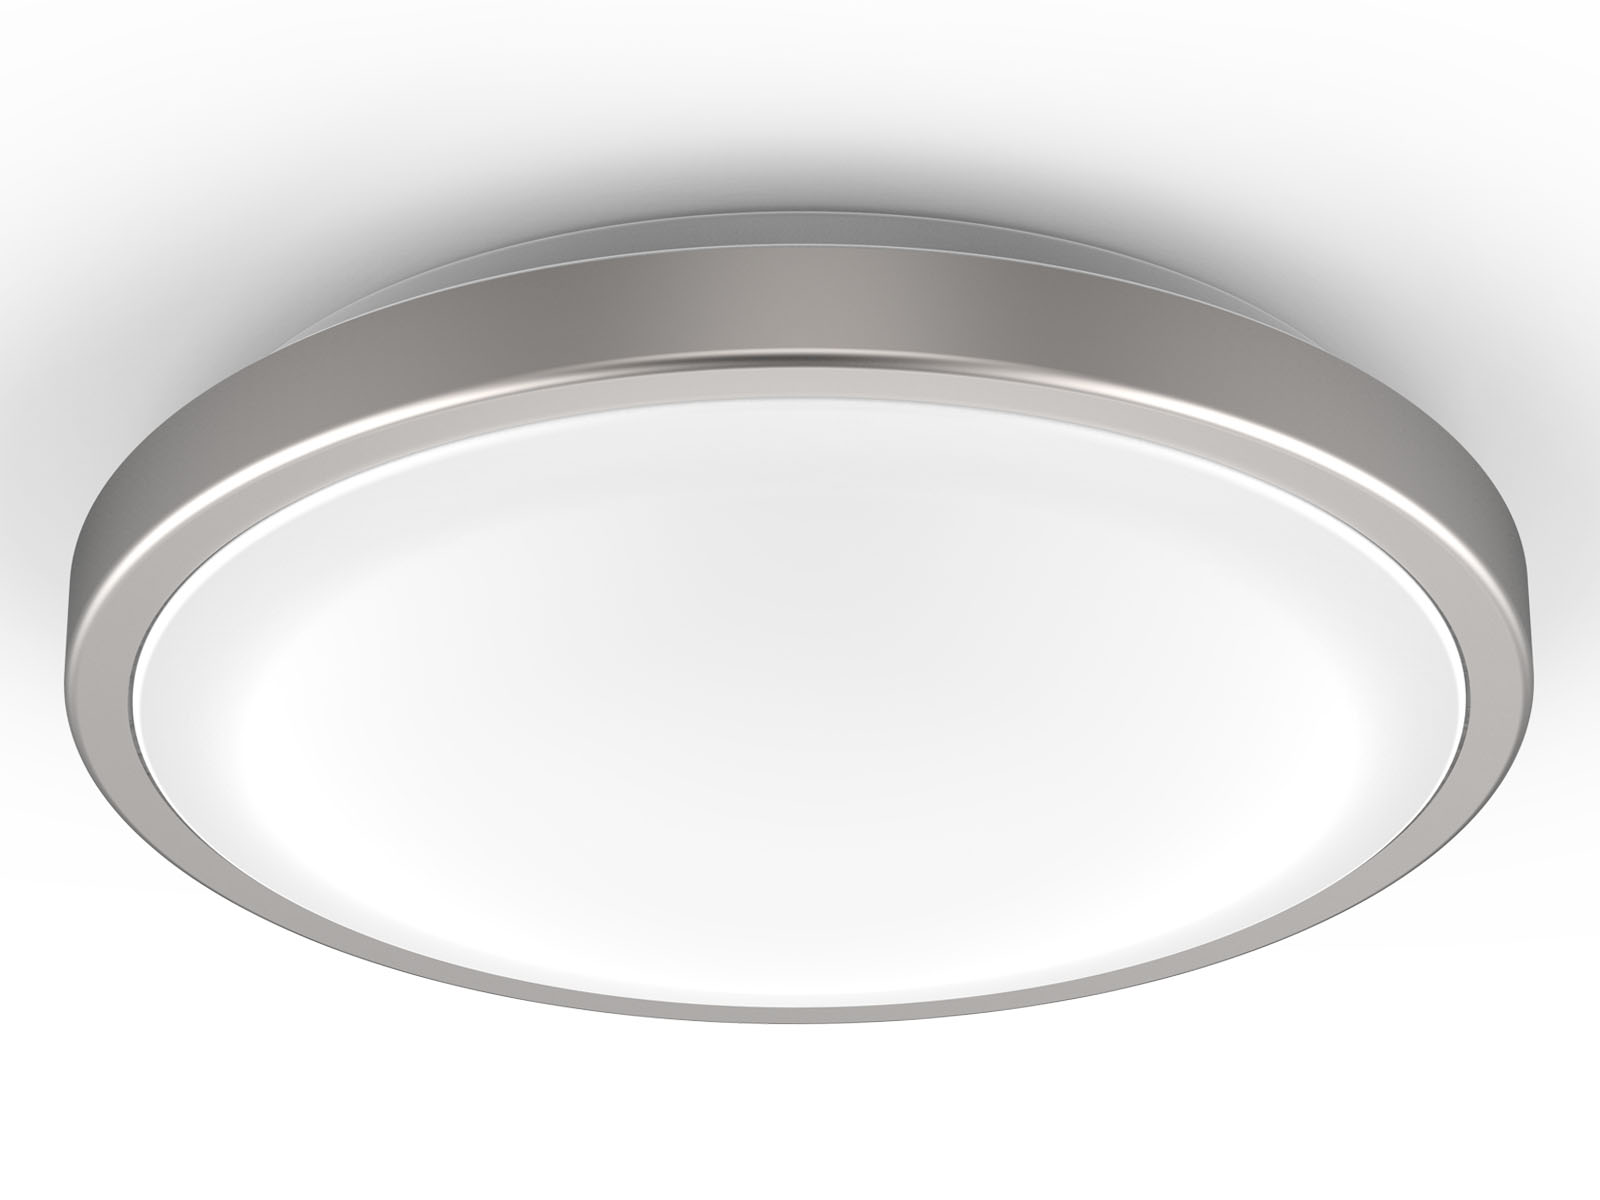 LED Ceiling Light Fxitures 3